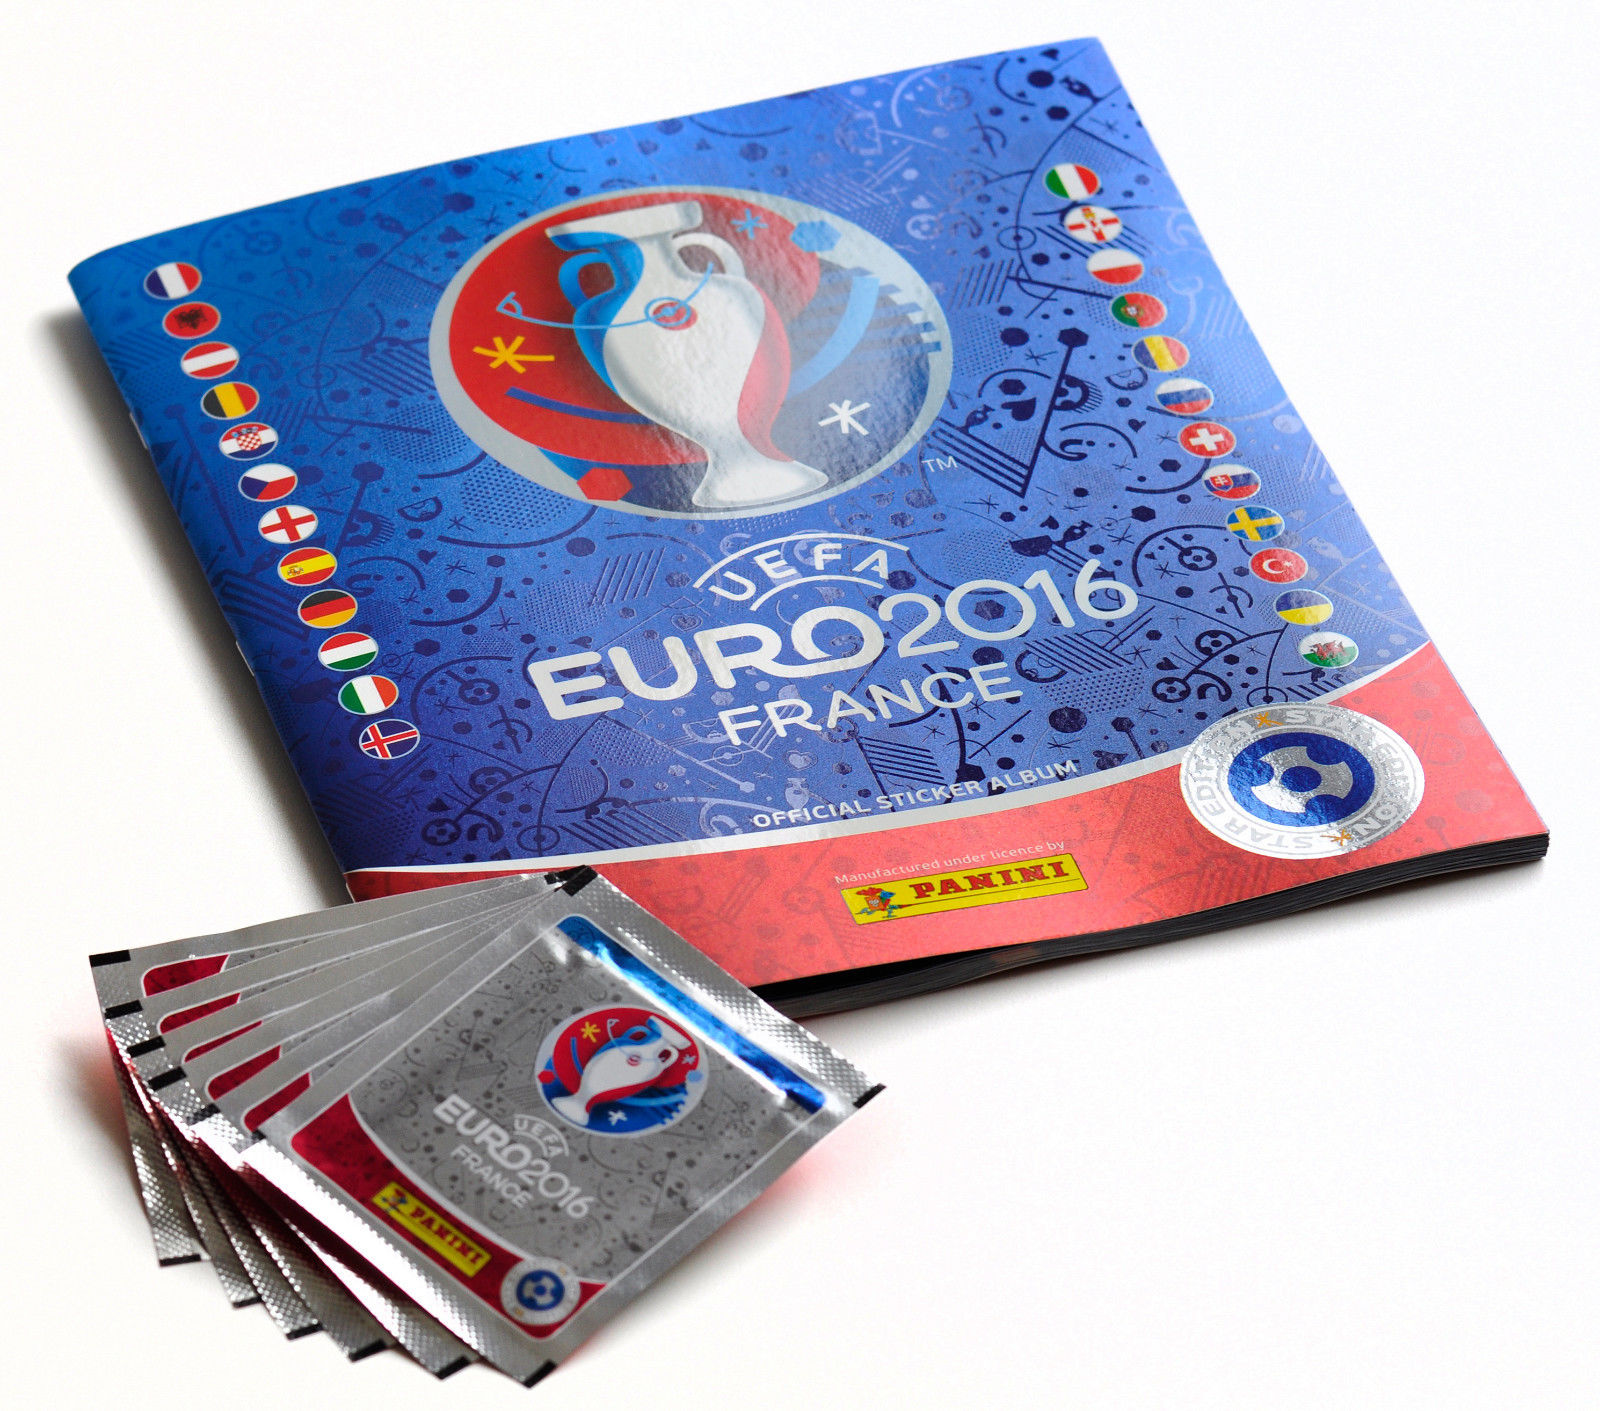 Euro 2016 Panini soccer sticker album packs